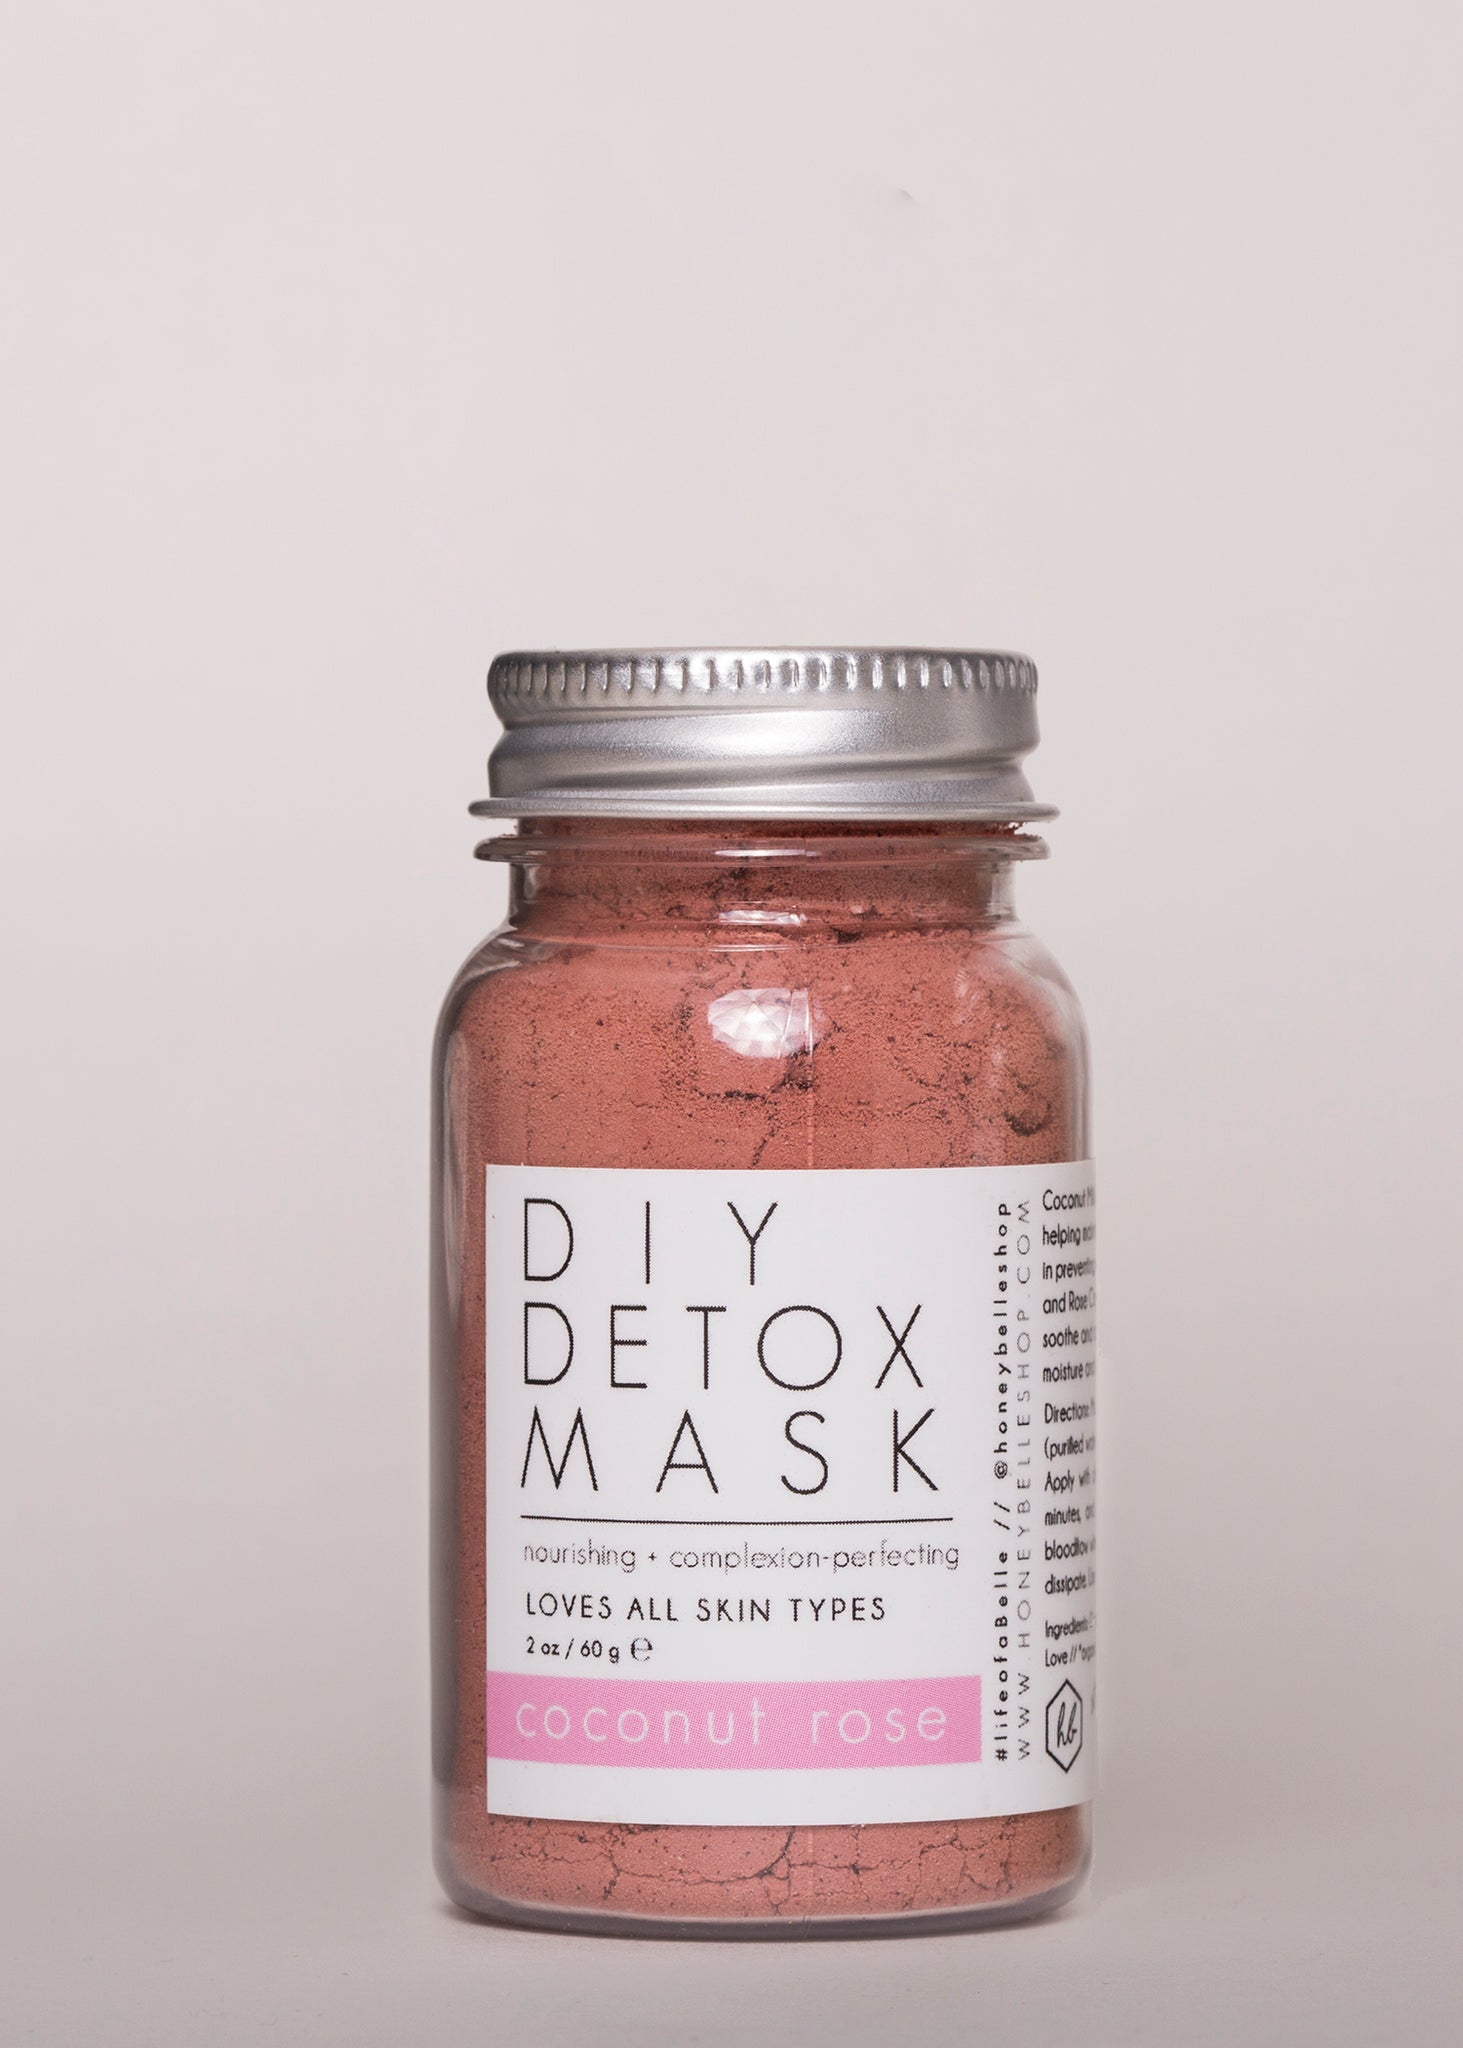 DIY Detox Mask Coconut Rose - Honey Belle | Goodnight Beauty | skin care, natural beauty, clay mask, rose, coconut oil, made in USA